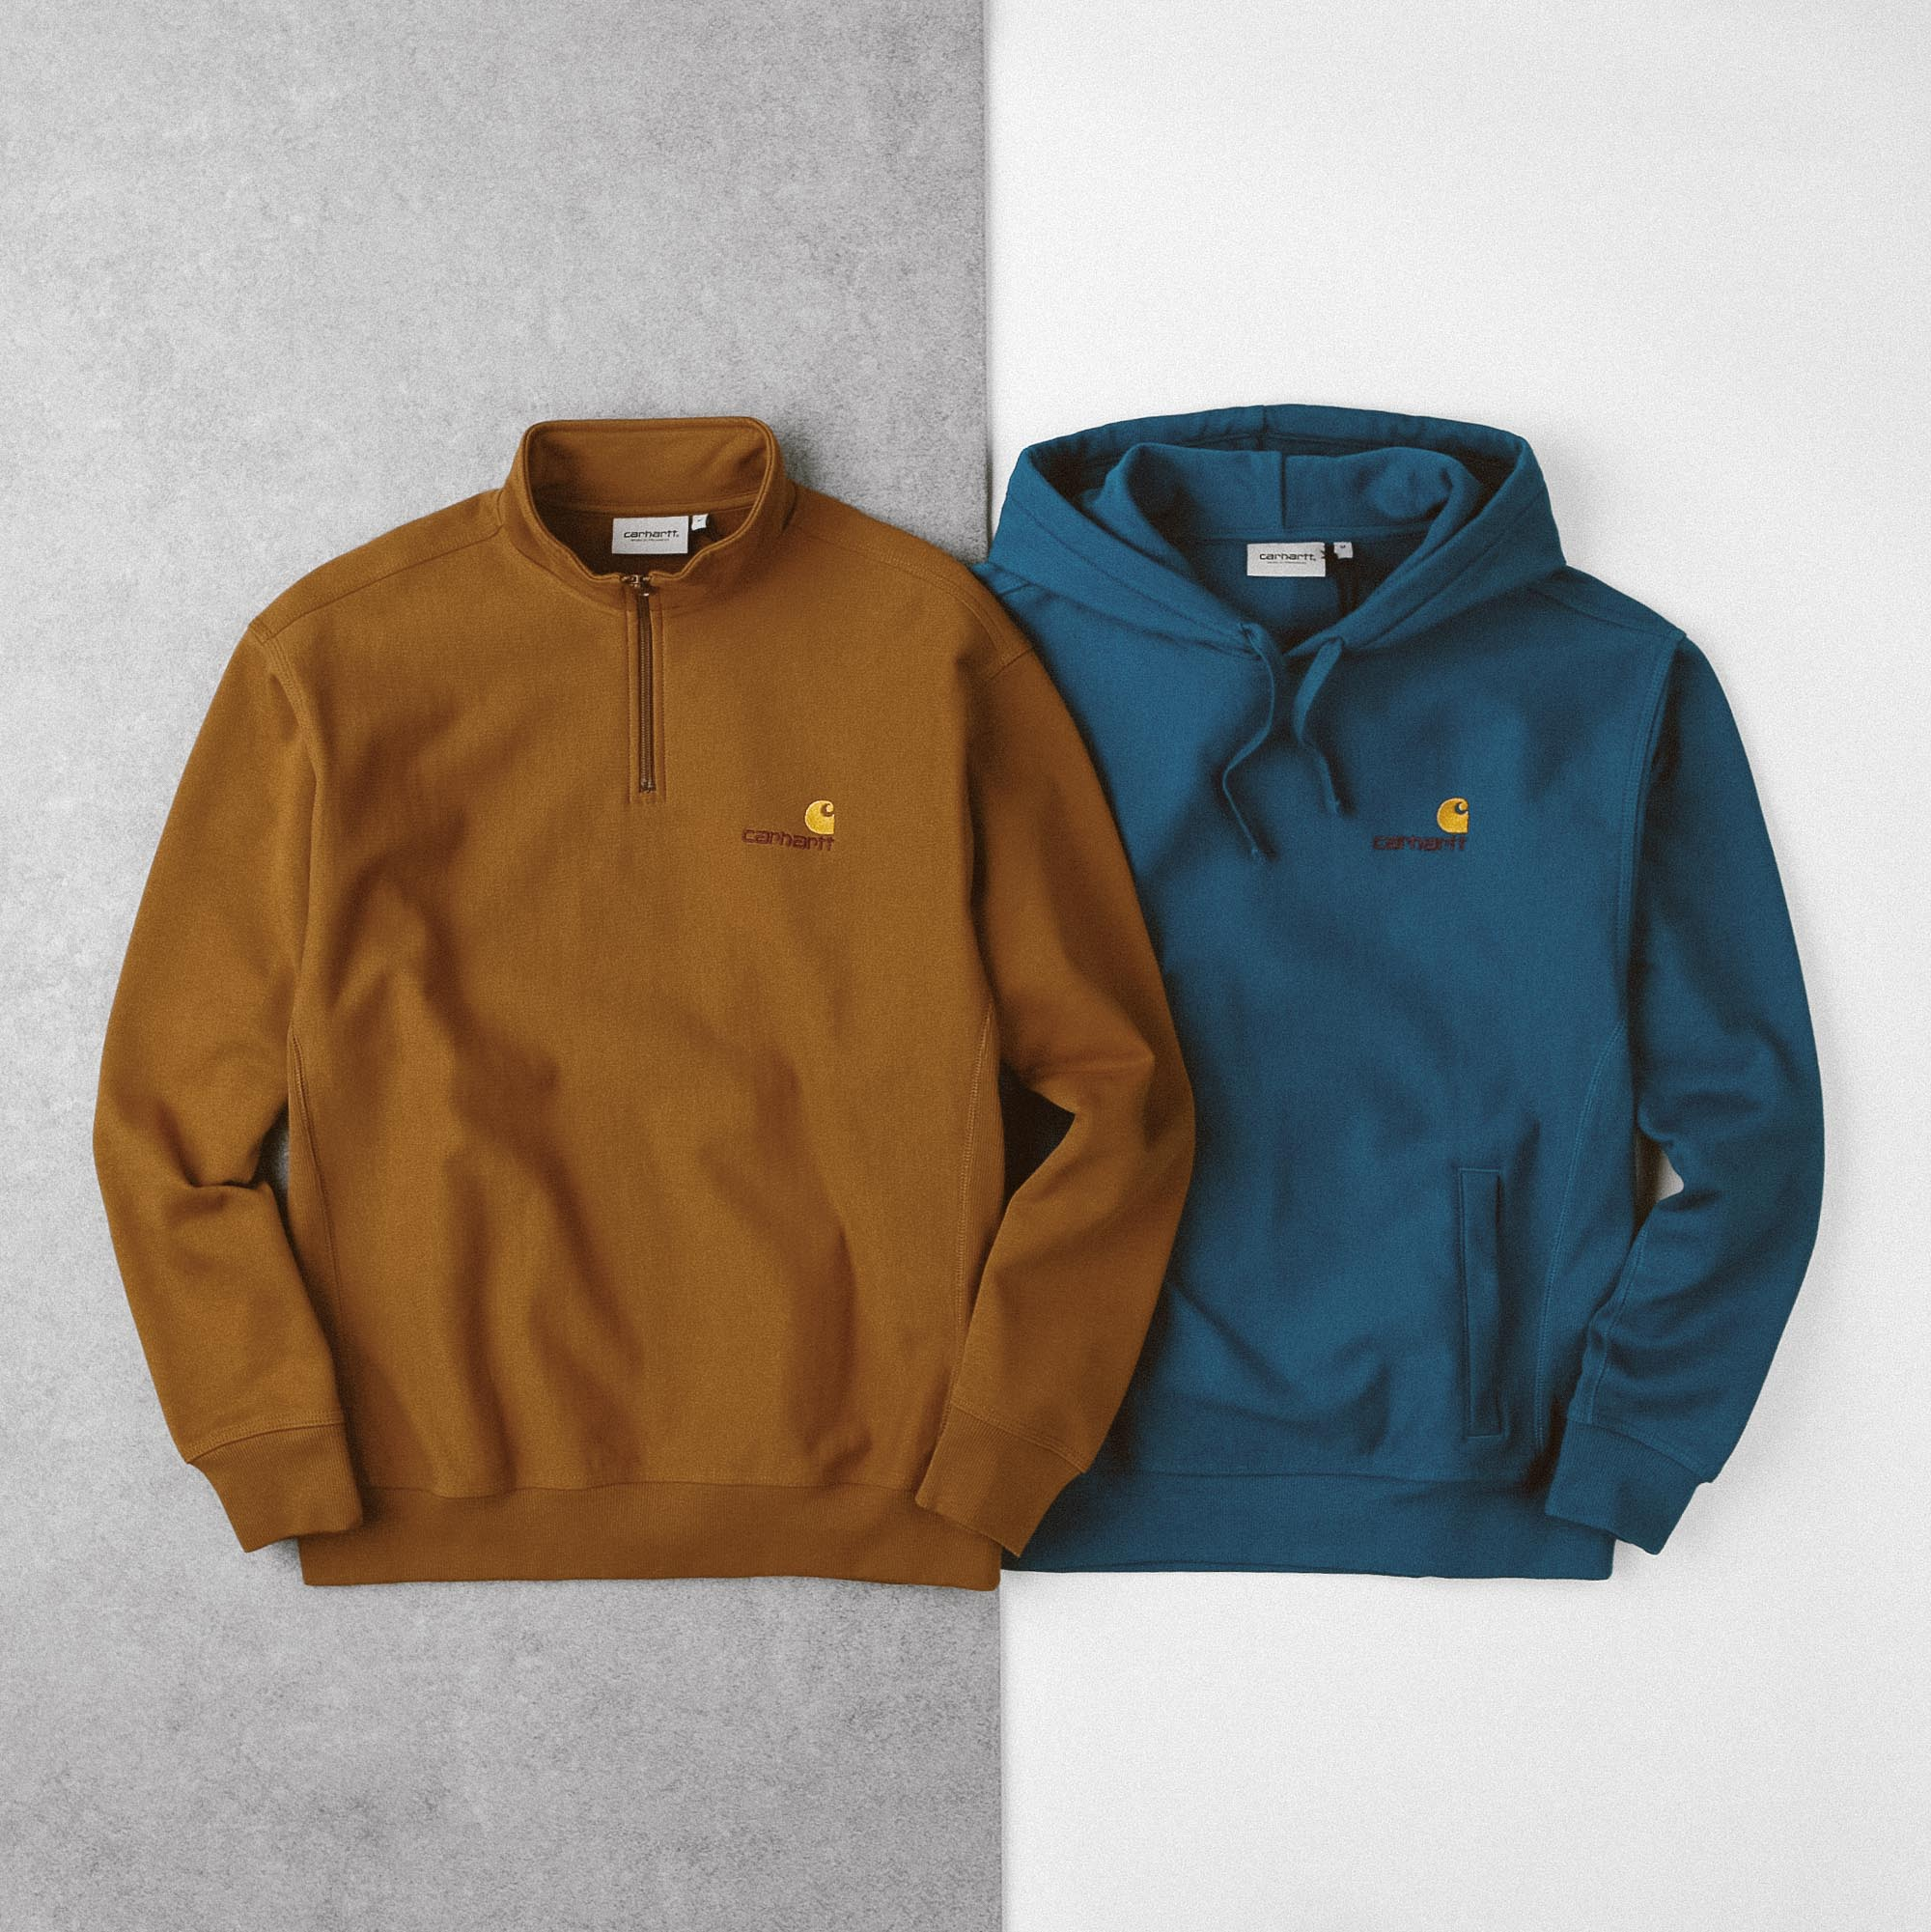 Carhartt SS20: Collection Overview | Flatspot